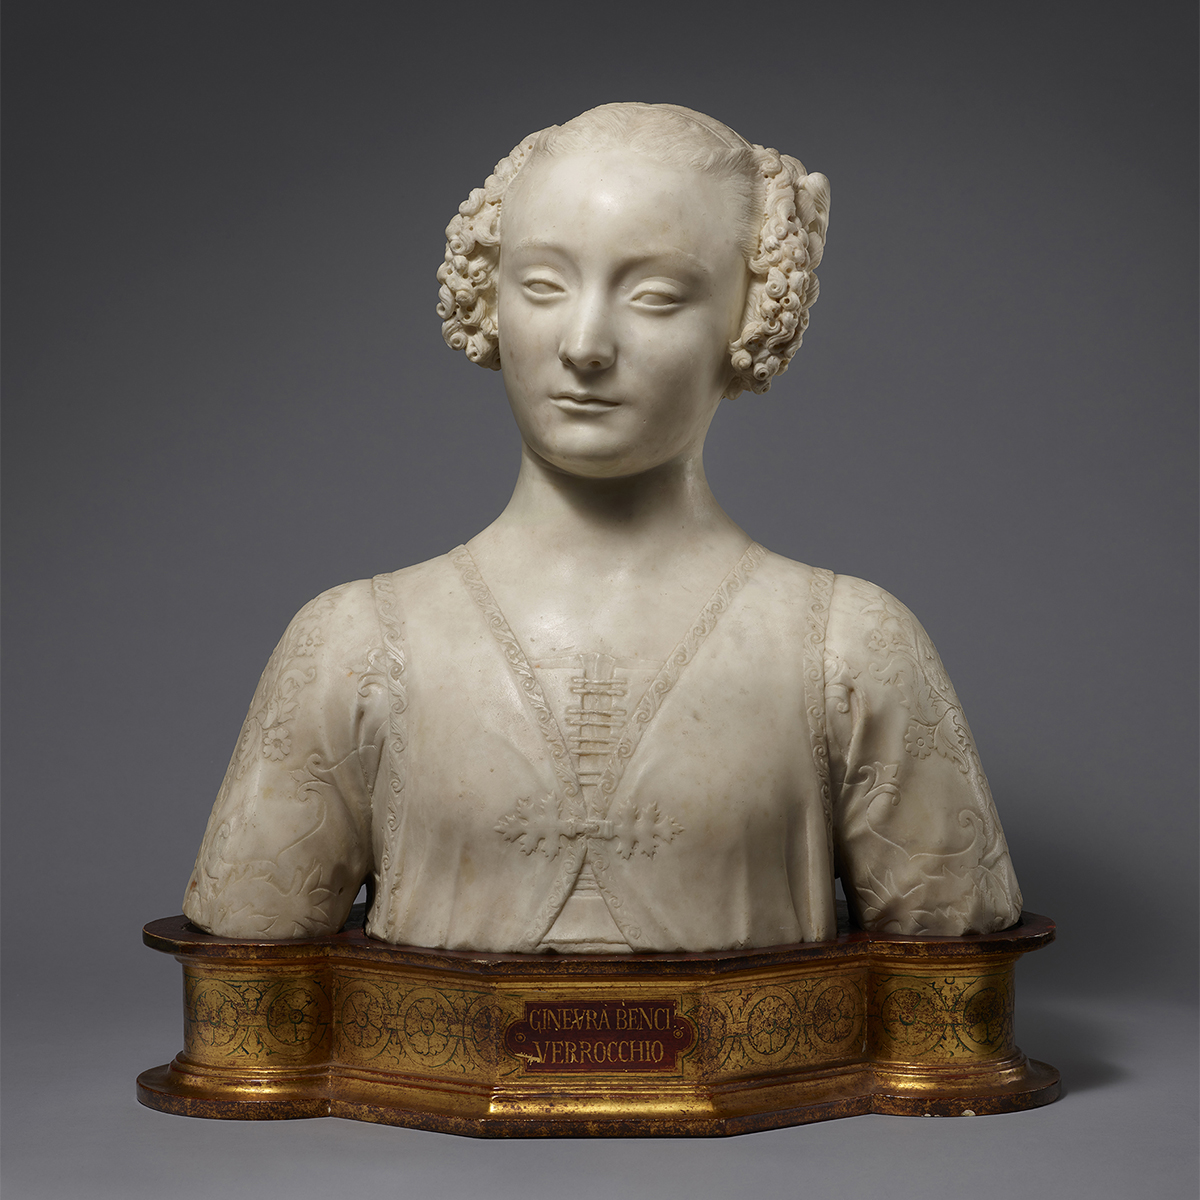 A marble bust of a young woman. Her curly hair is fastened with ribbons and rosettes. She wears a laced bodice